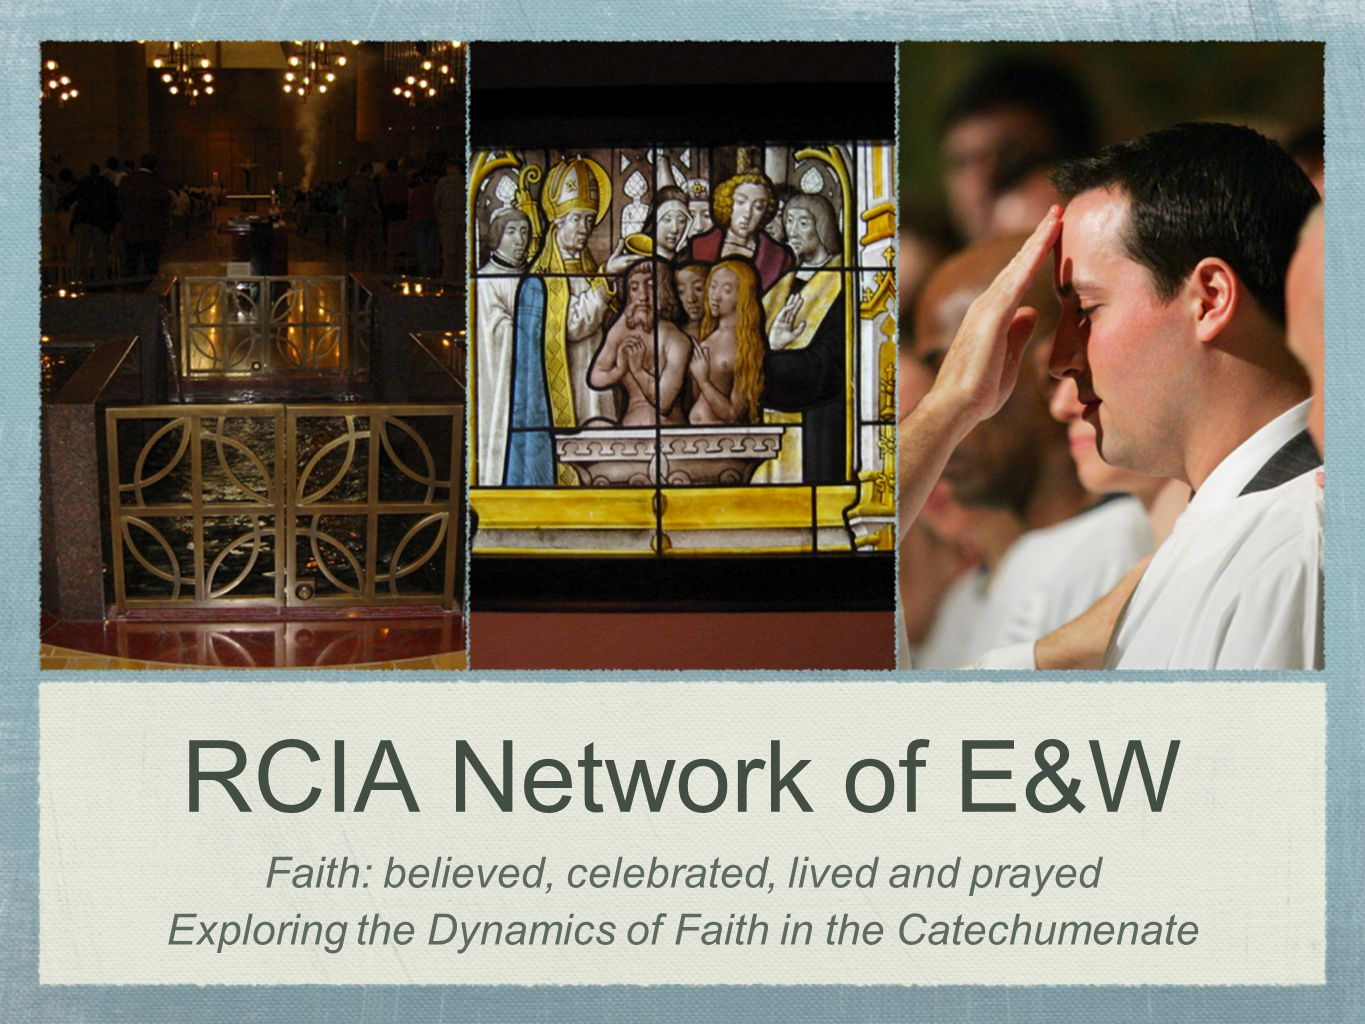 RCIA Network of E&W Faith: believed, celebrated, lived and prayed Exploring the Dynamics of Faith in the Catechumenate